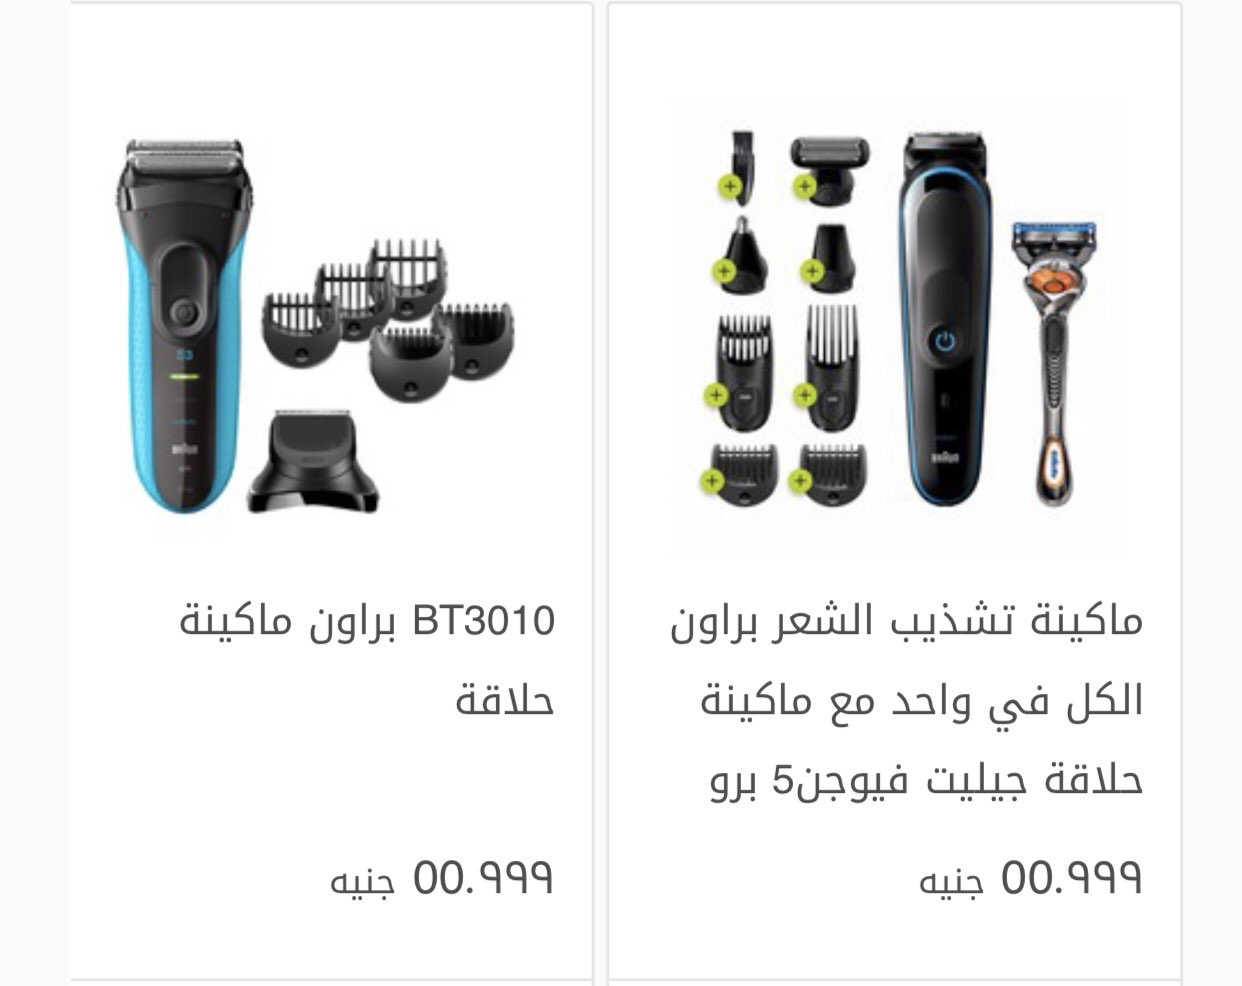 New Carrefour Egypt introduces 50 EGP discount codes on your first order 7